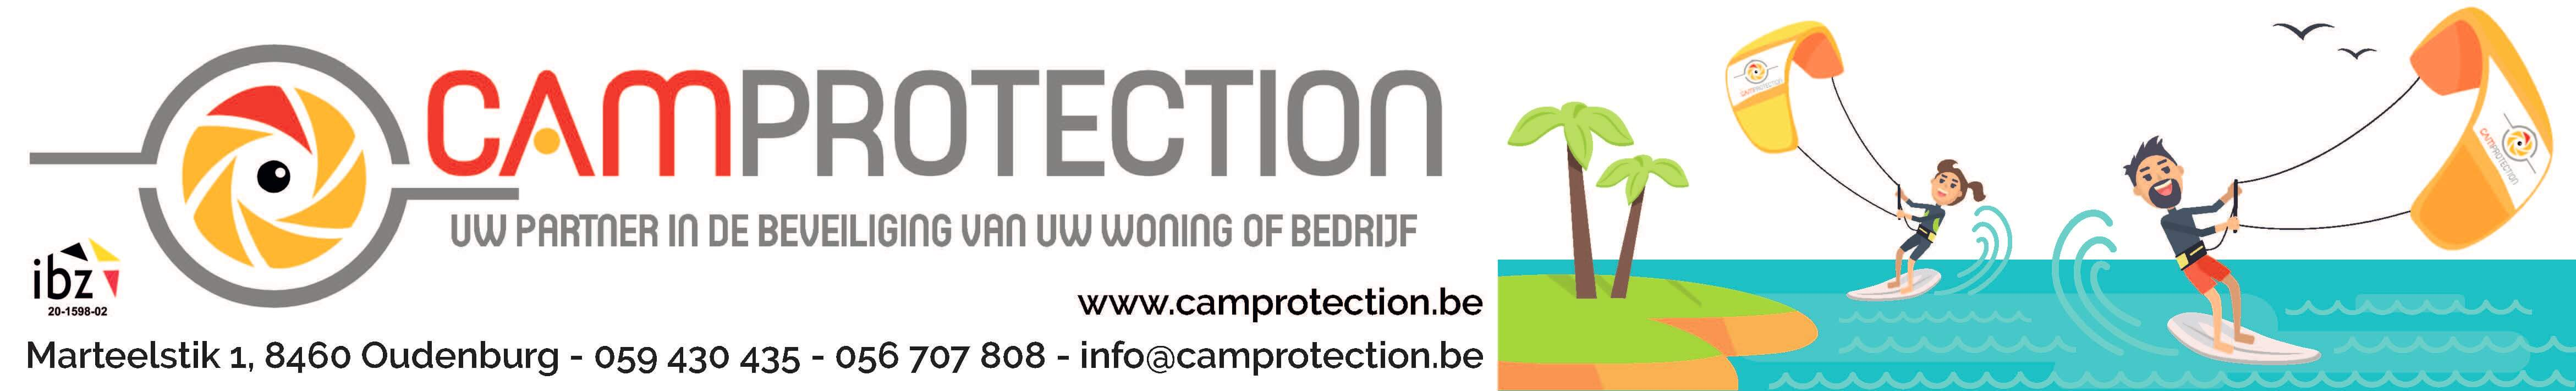 Camprotection